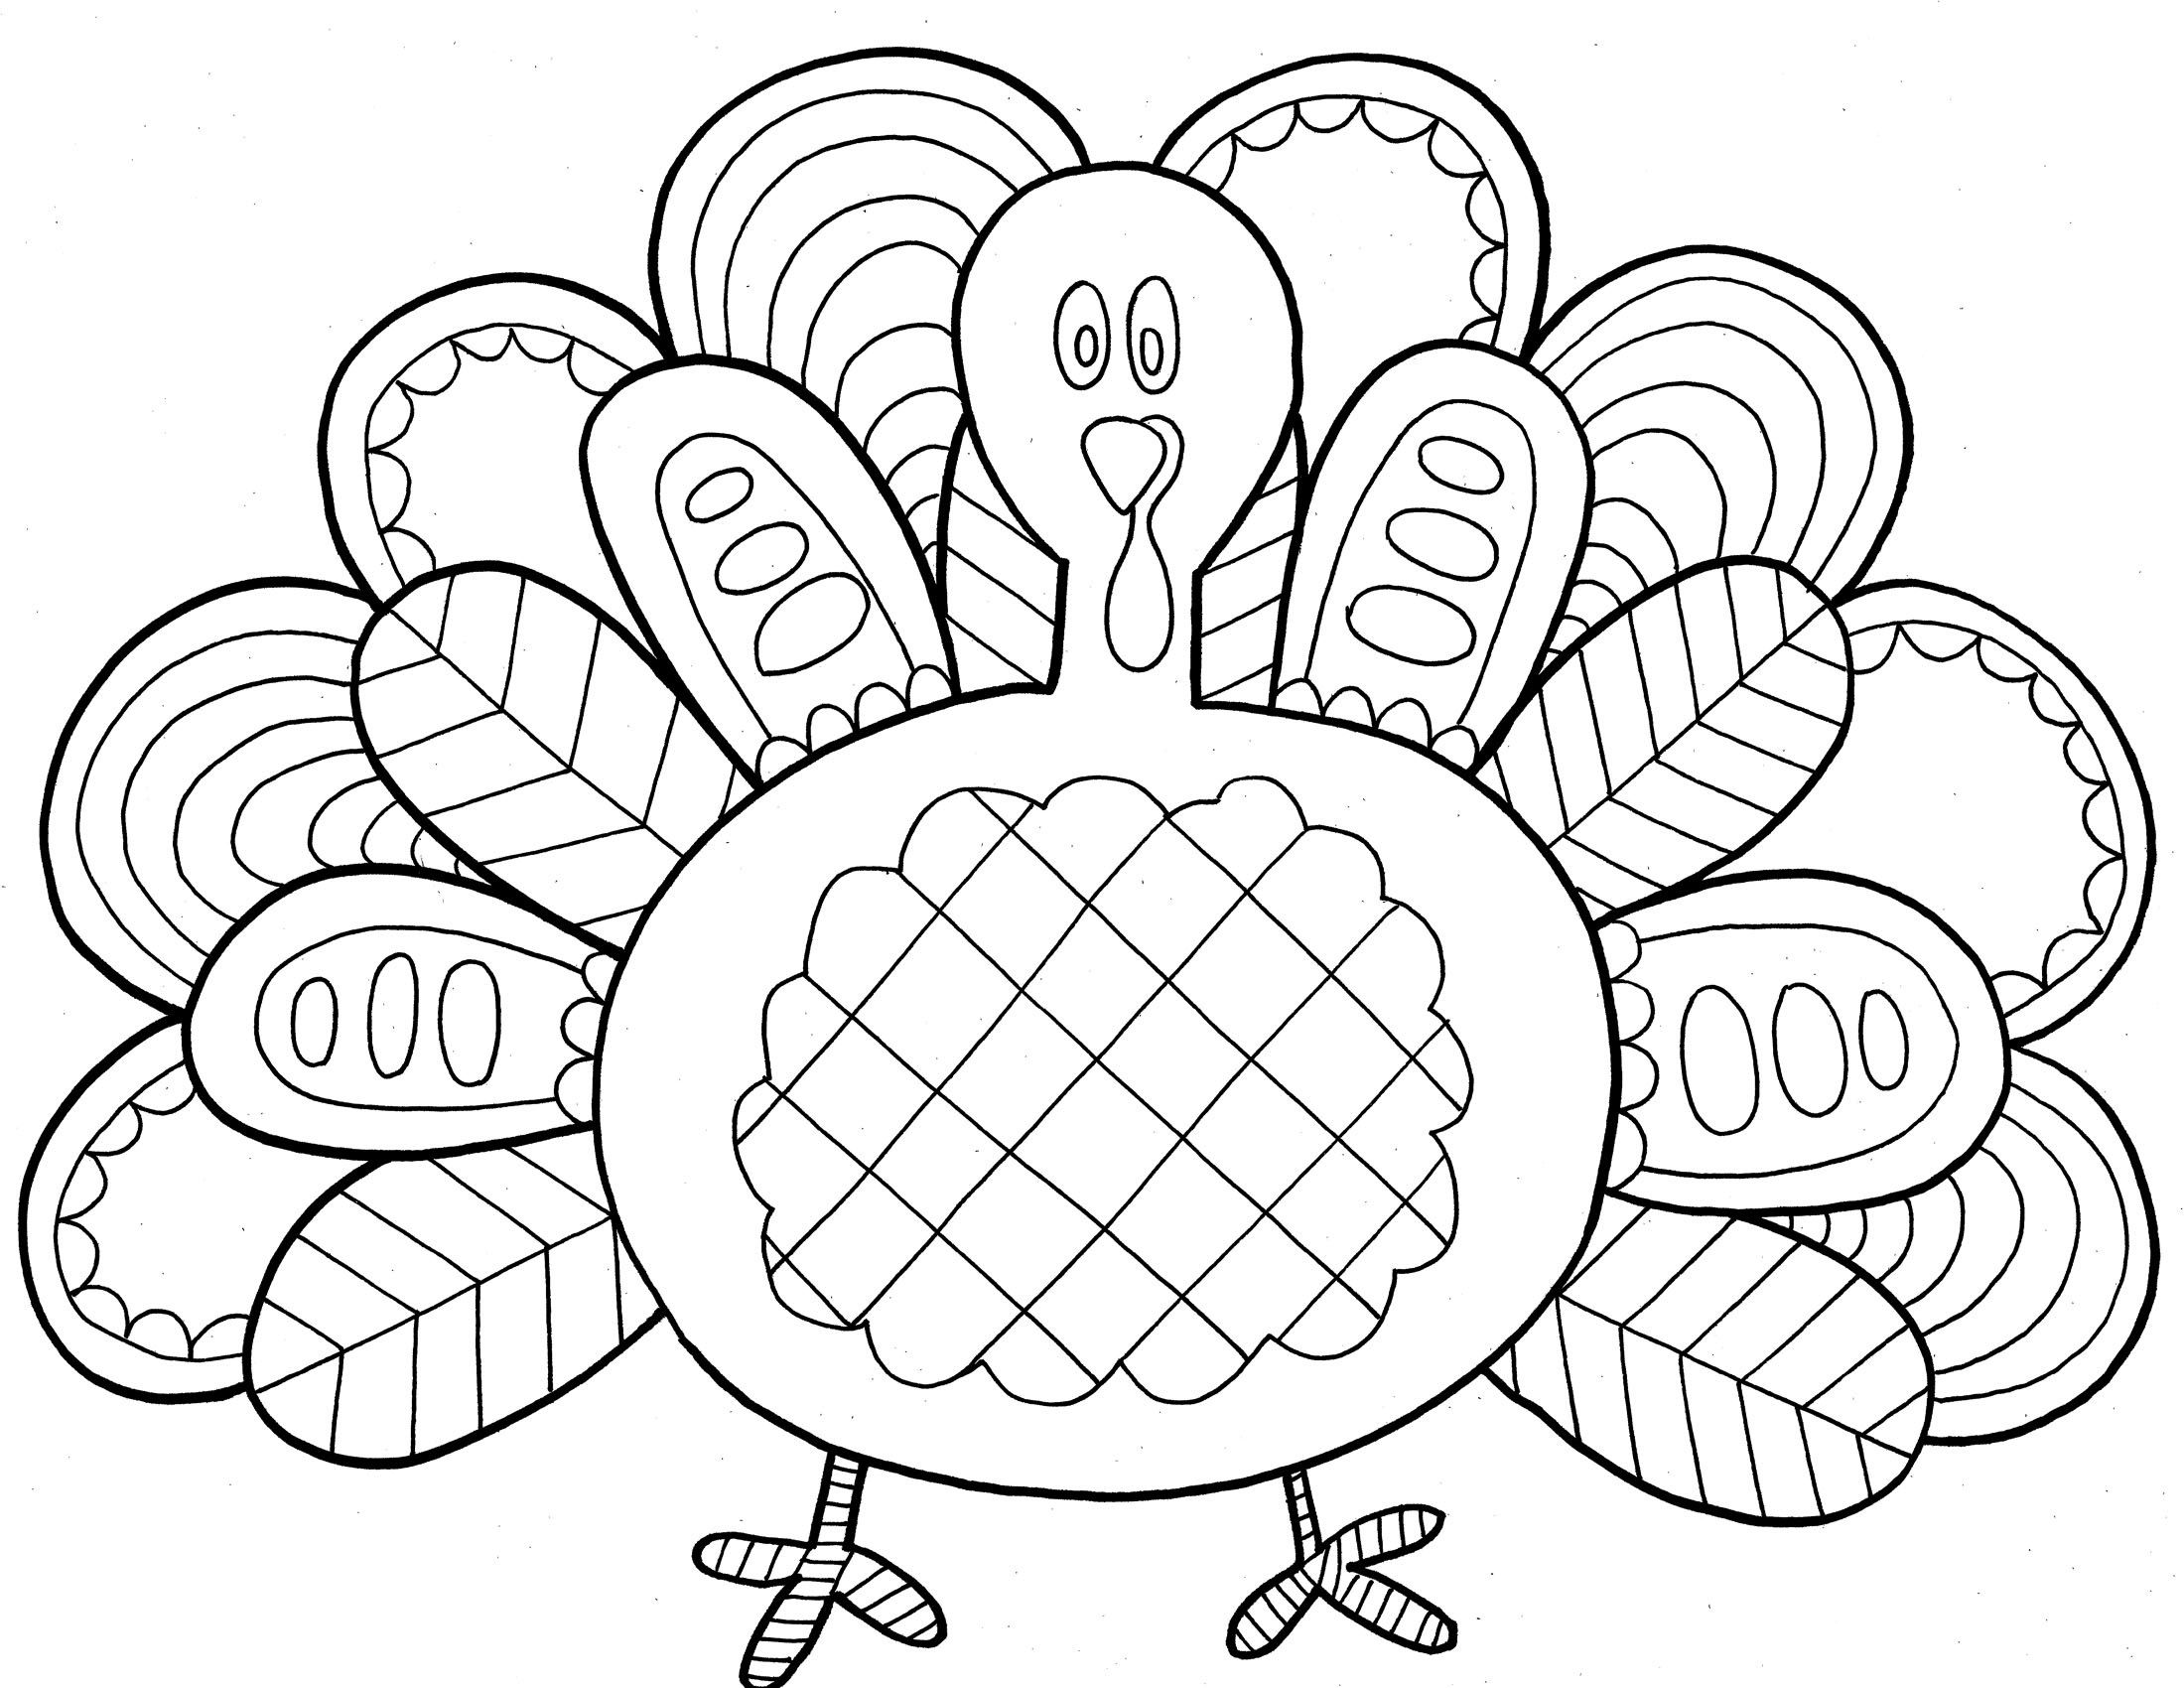 Thanksgiving Turkey Coloring Sheets 2019 | Educative ...